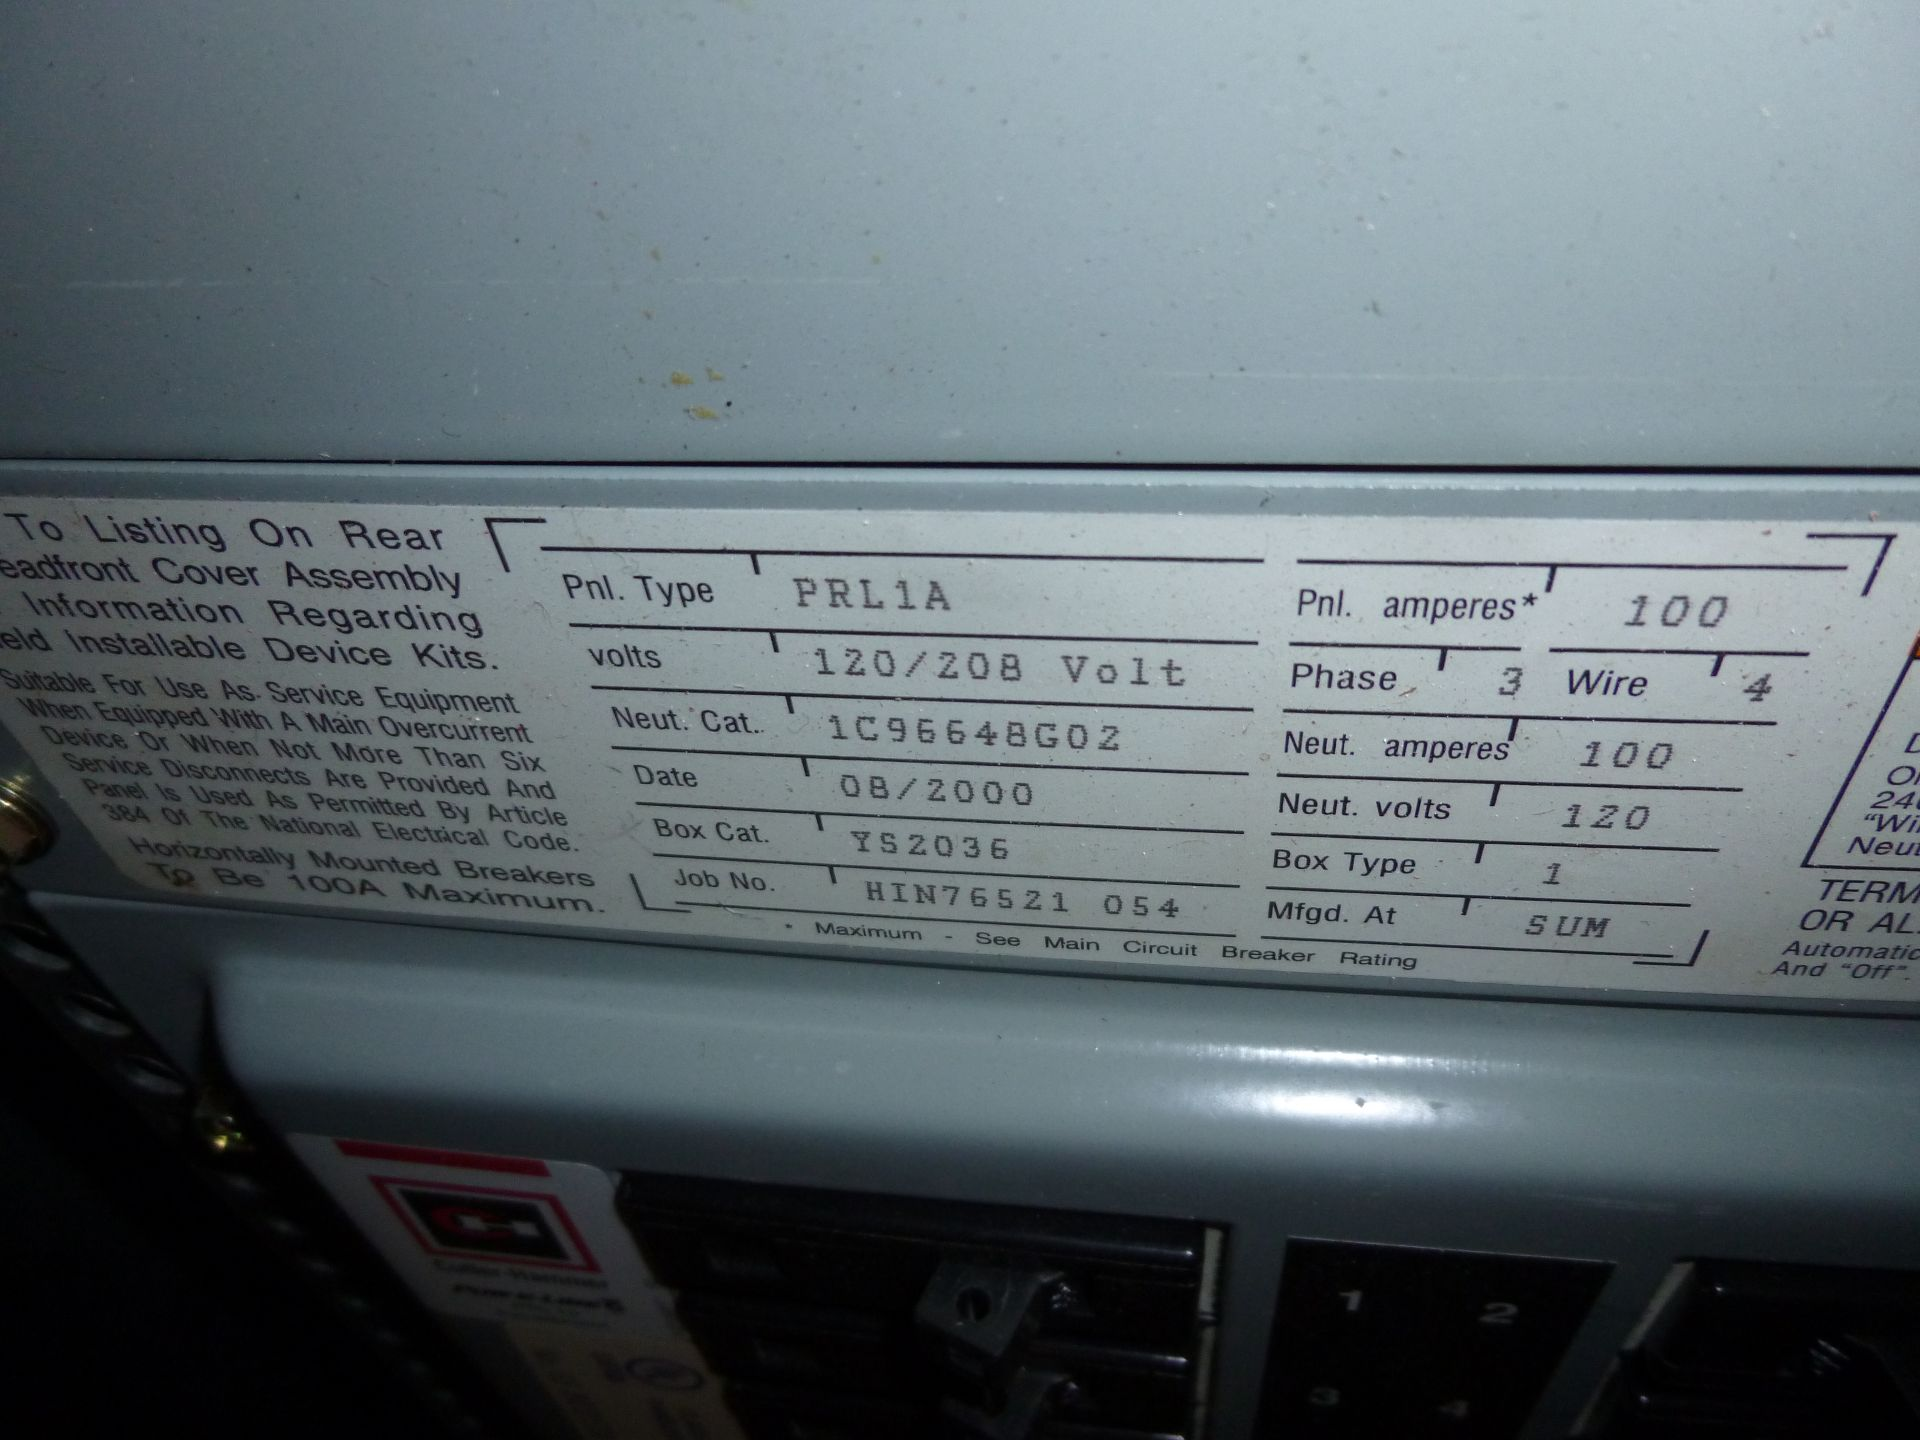 Lot 14 - Cutler Hammer model PRL1A, 100amp box, 120/208 volt, 3 phase, 4 wire, includes all breakers as